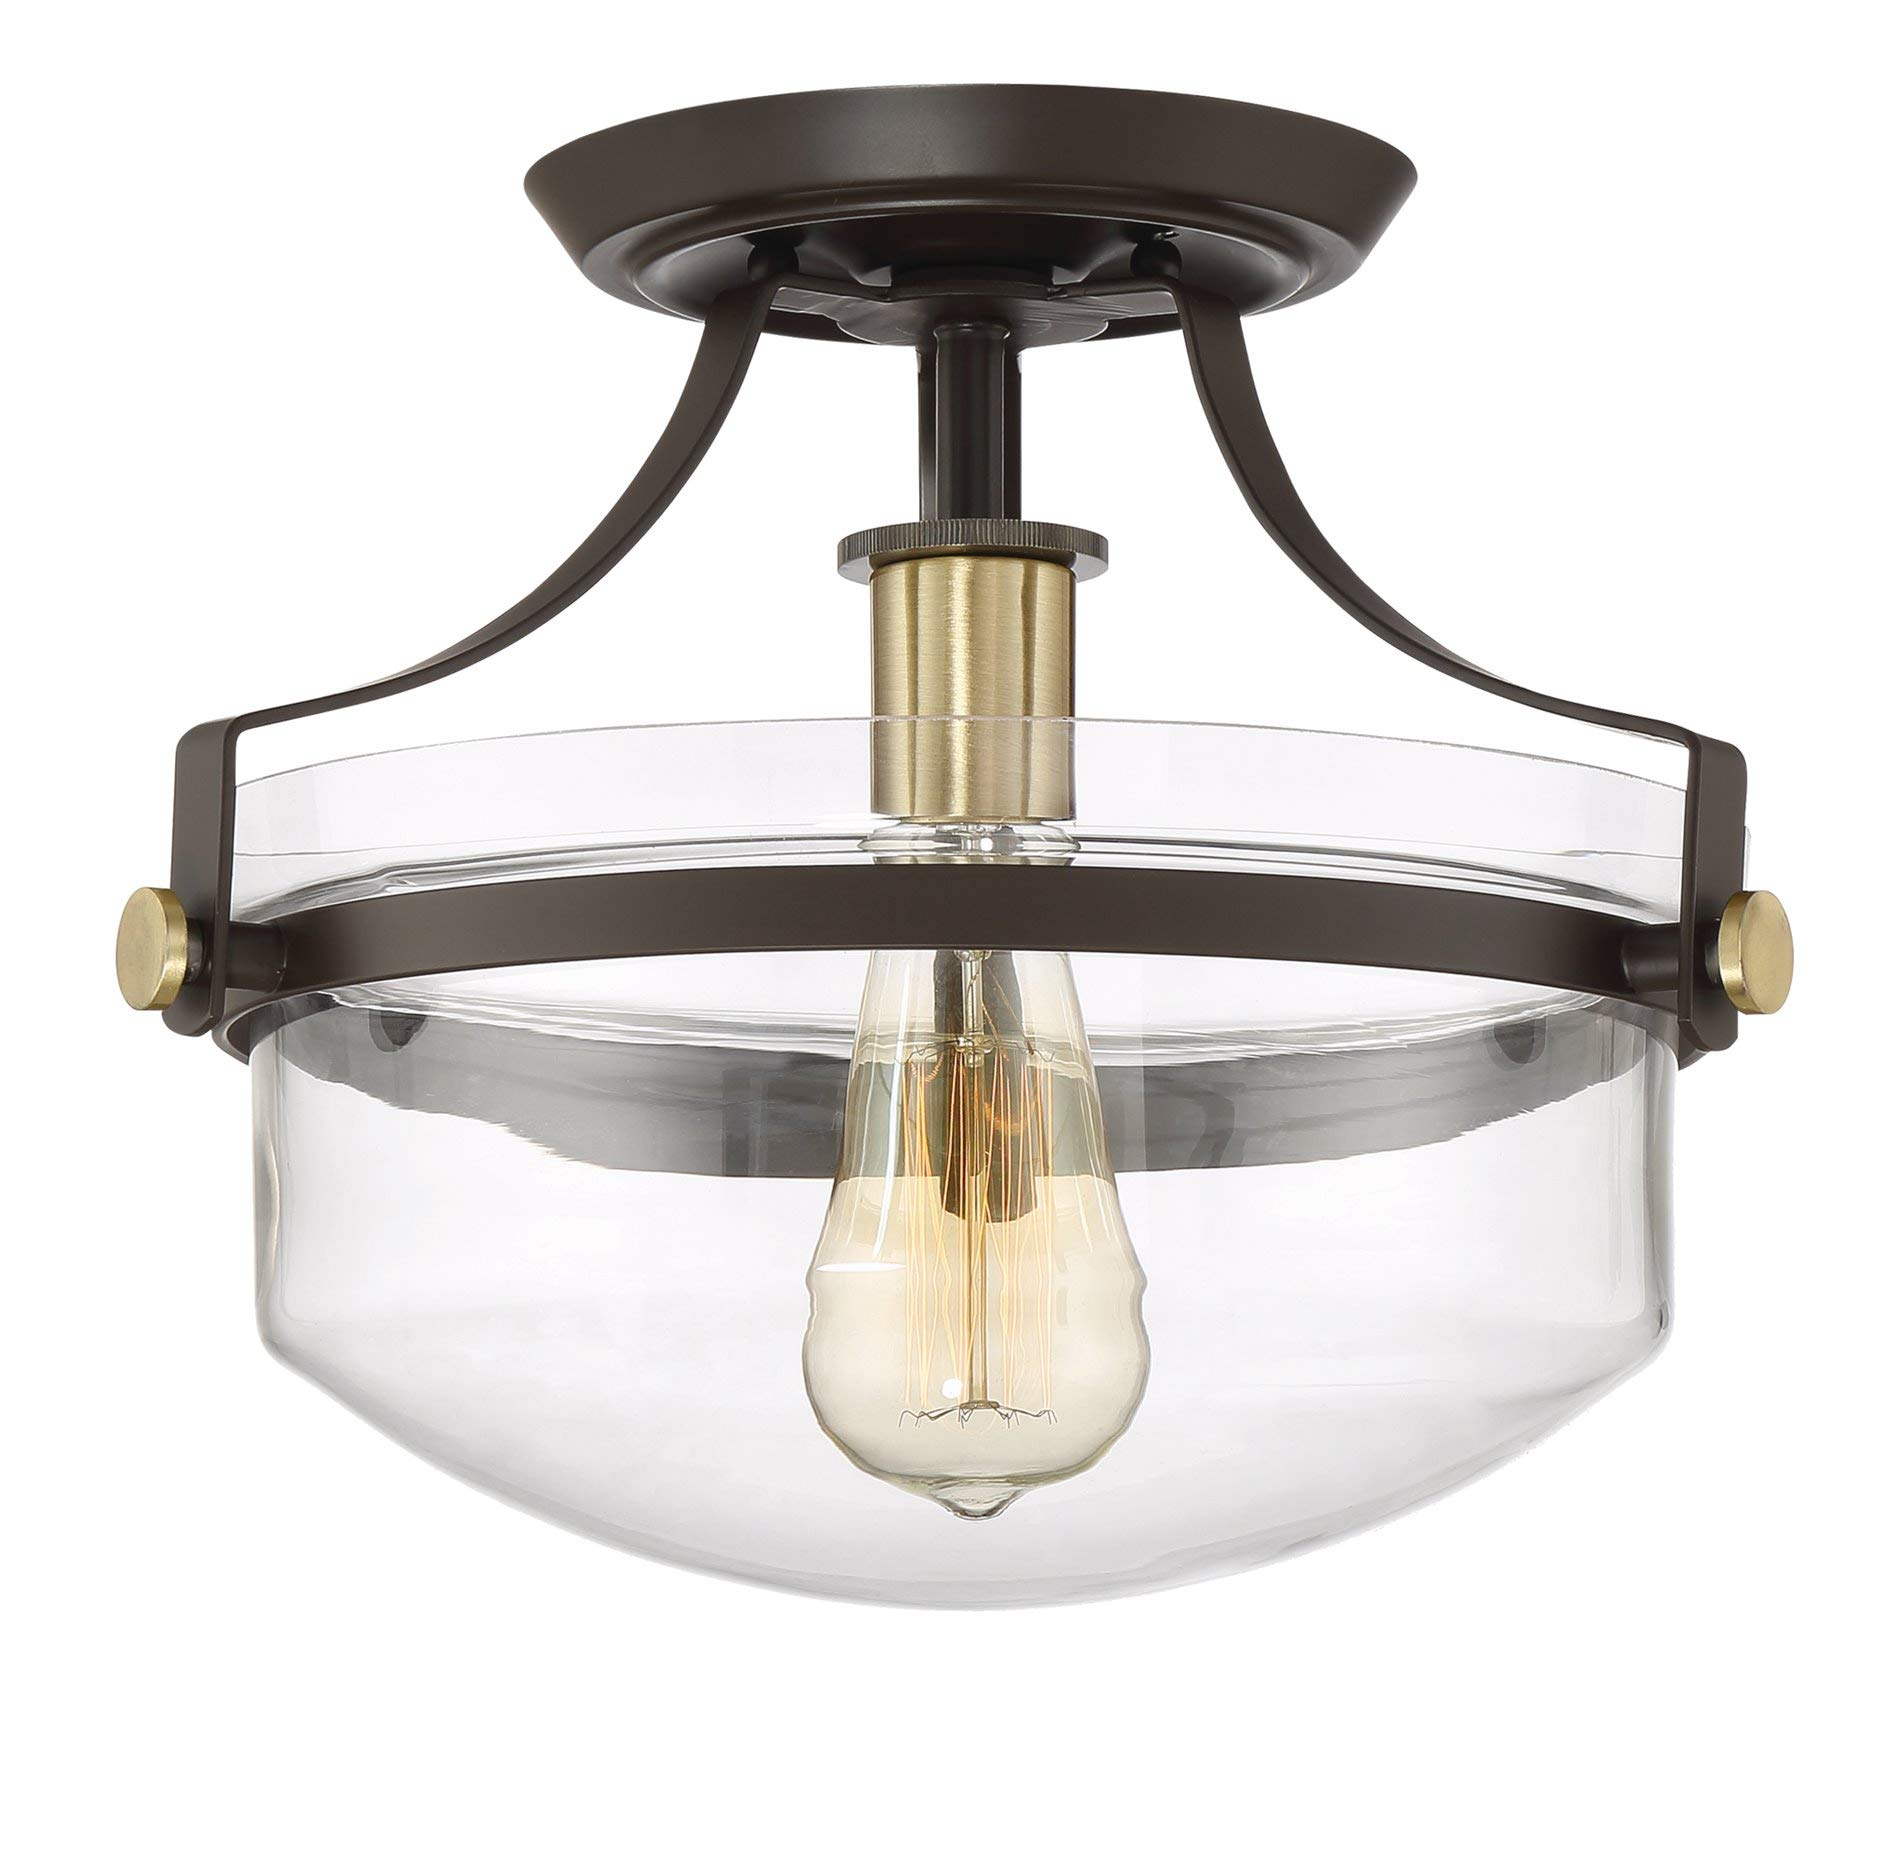 Kira Home Zurich 12'' Rustic Semi-Flush Mount Ceiling Light w/Glass Shade, Antique Brass Accents, LED Compatible, Oil-Rubbed Bronze Finish